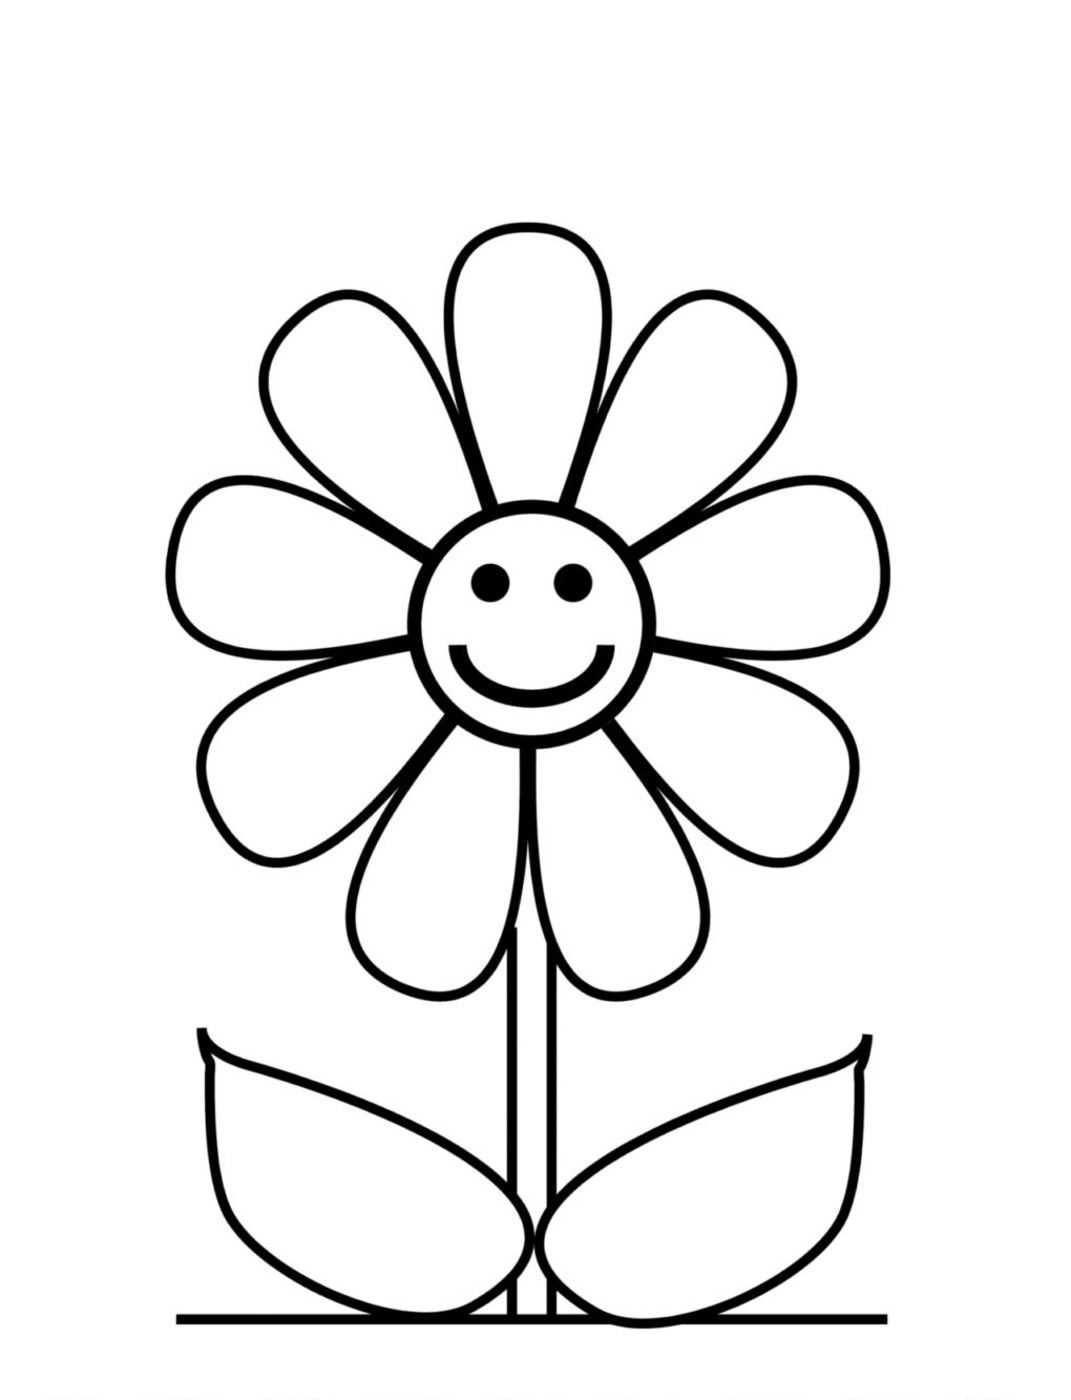 Colouring in sheets of flowers - Flowers Coloring Pages Flower Coloring Pages Flower Coloring Pages 2 Flower Coloring Pages 3